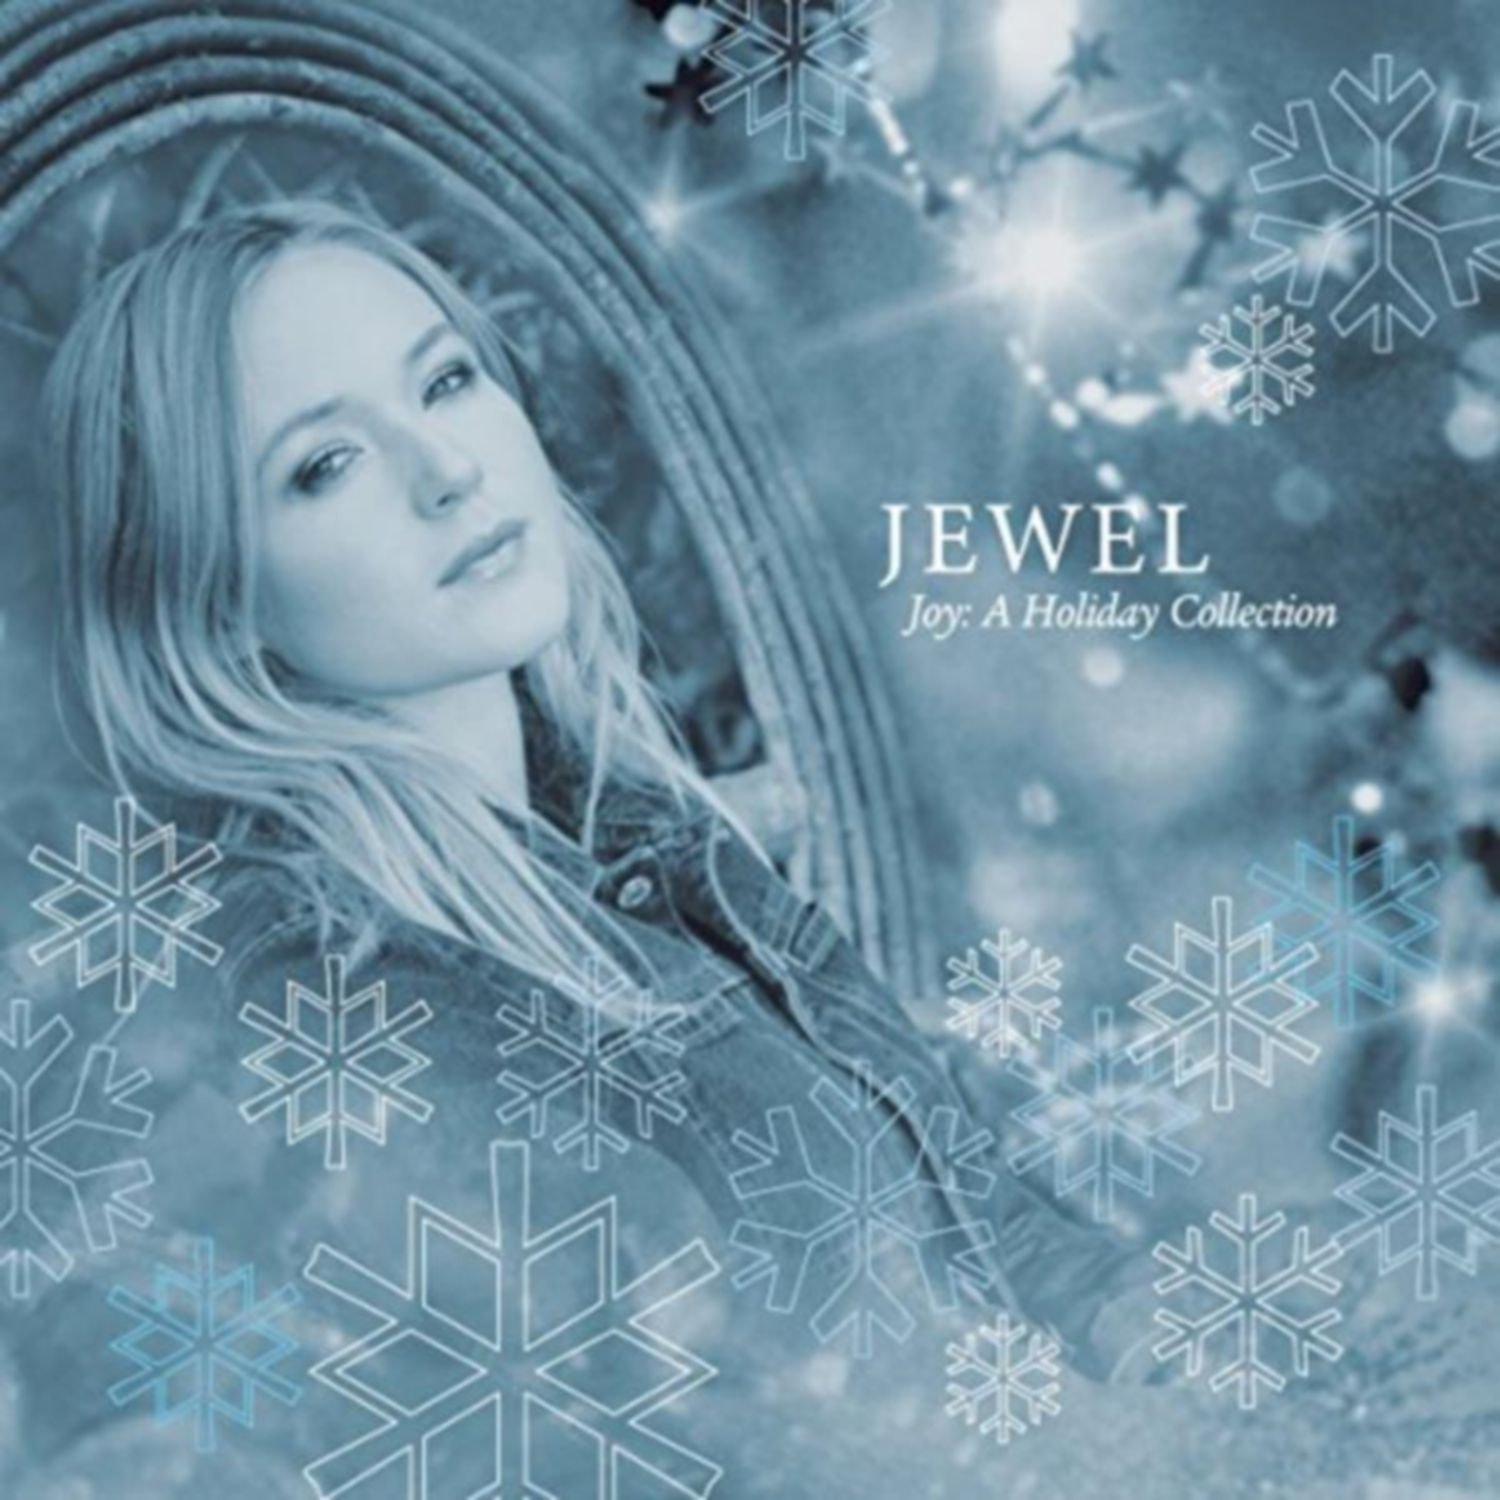 Go Tell It on the Mountain / Life Uncommon / From a Distance (Medley) - Jewel